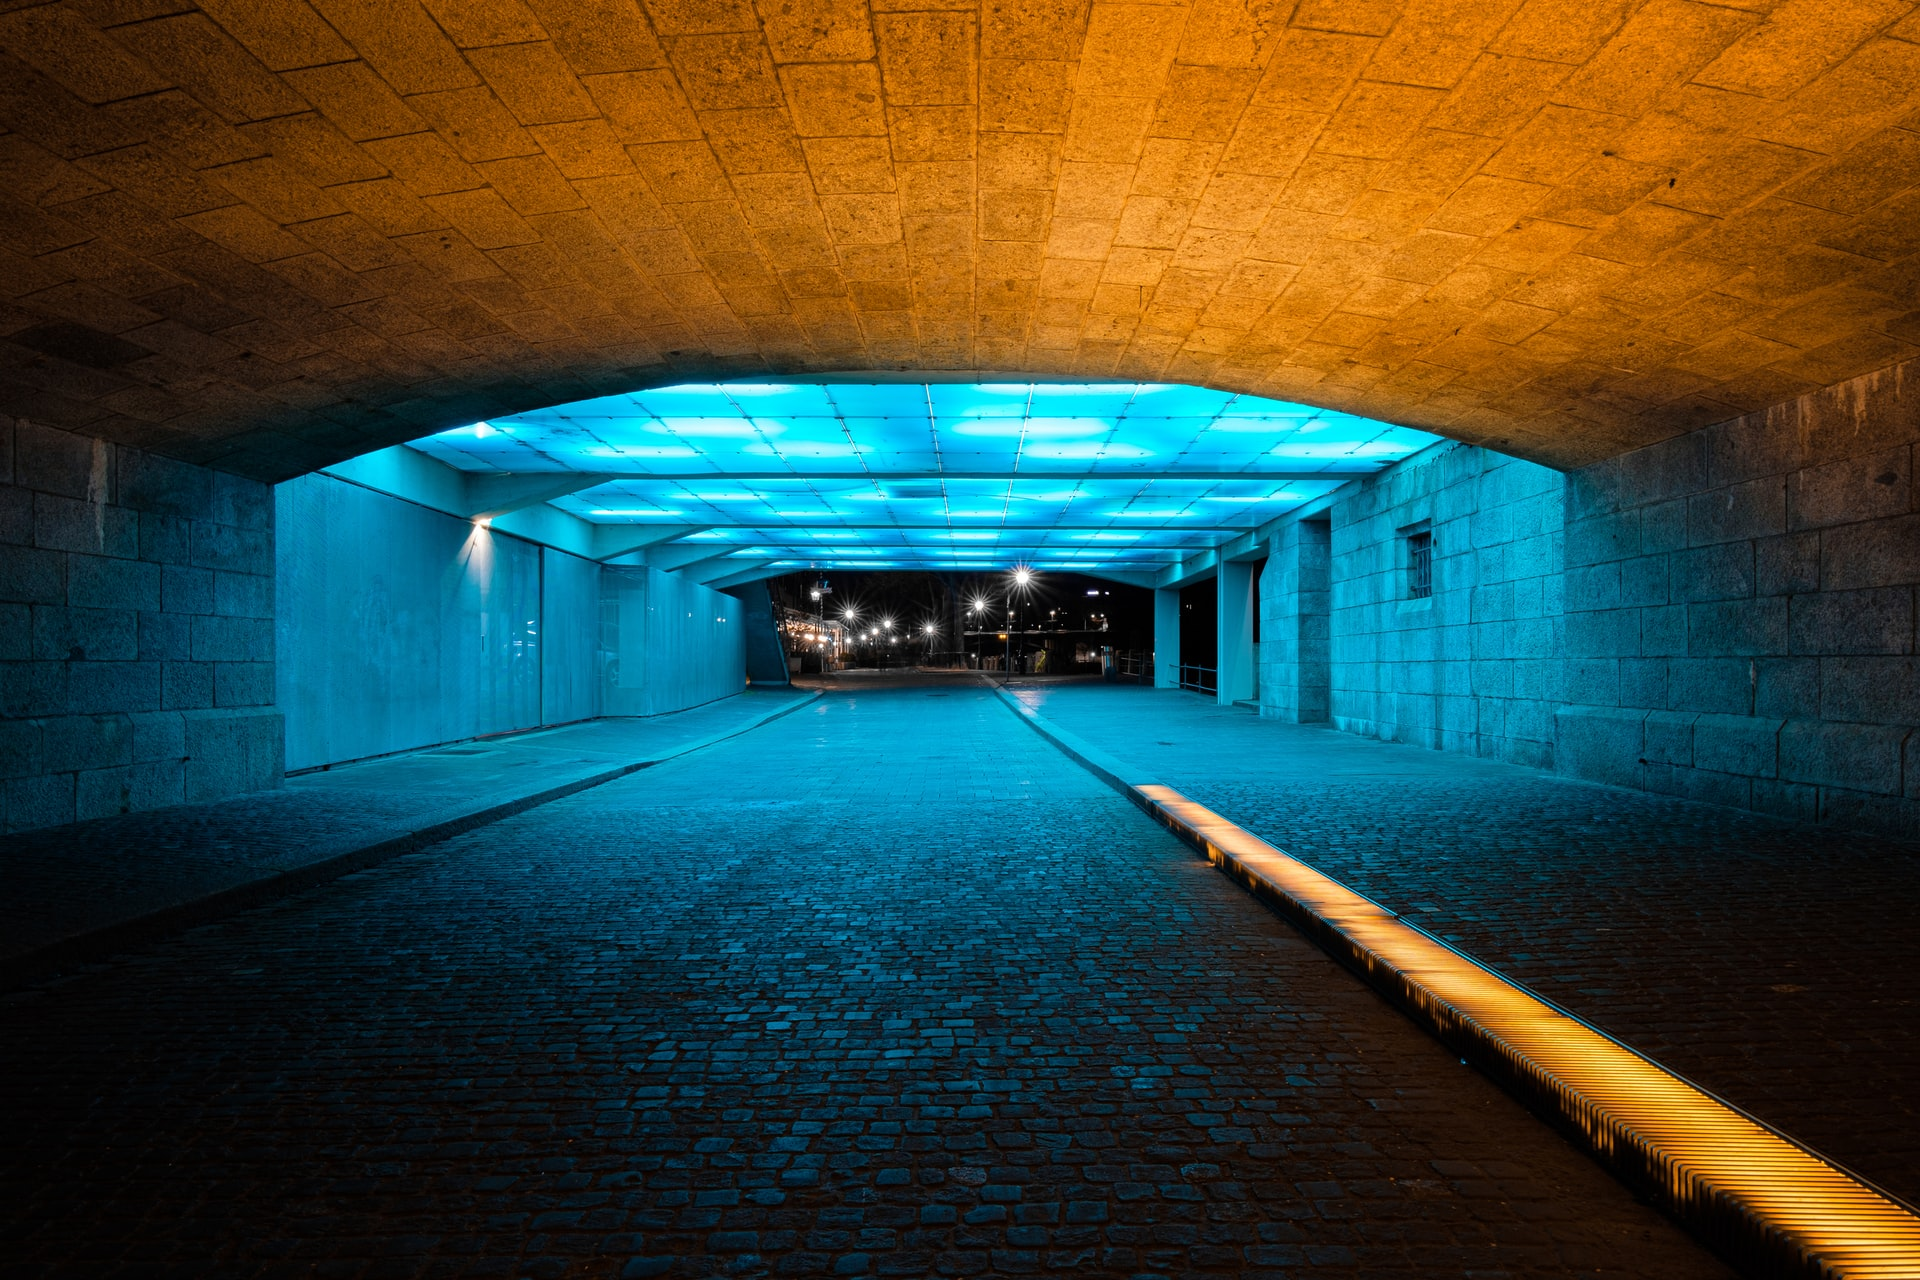 yellow, blue and black tunnel